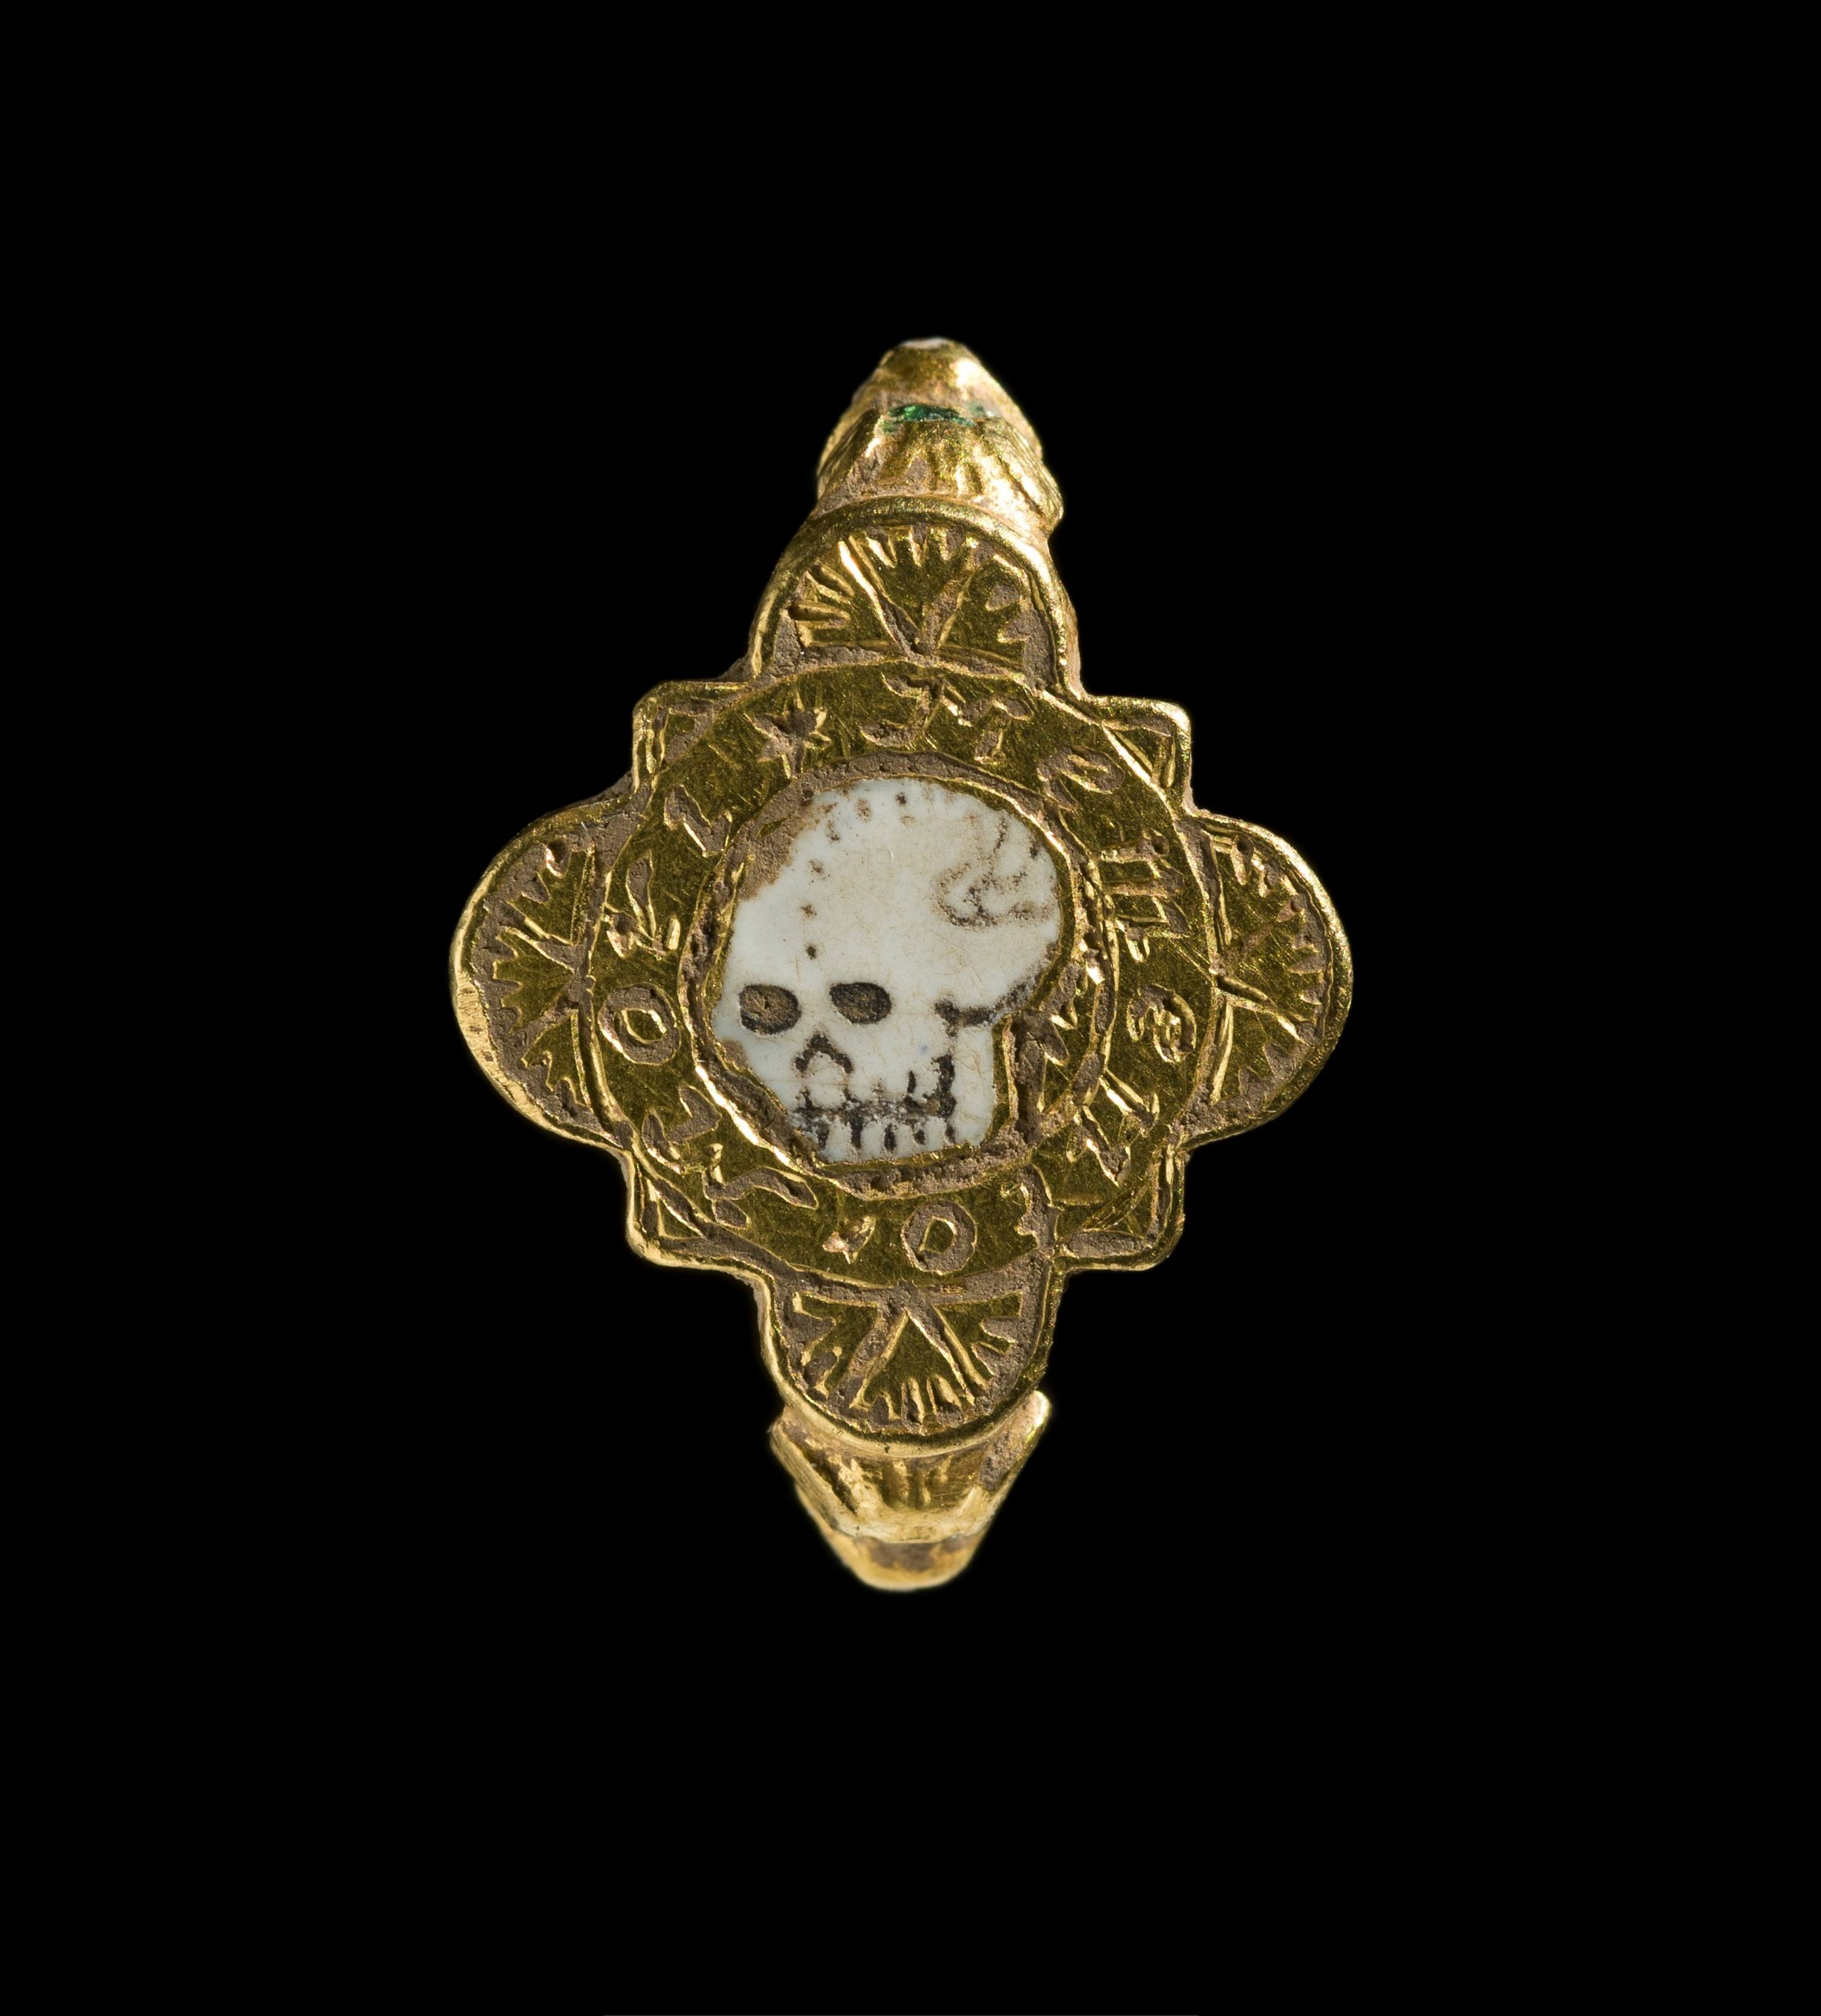 Amateur Metal Detectorists Found This Completely Creepy Medieval Skull Ring in Wales Buried With a Cache of Rare Treasures